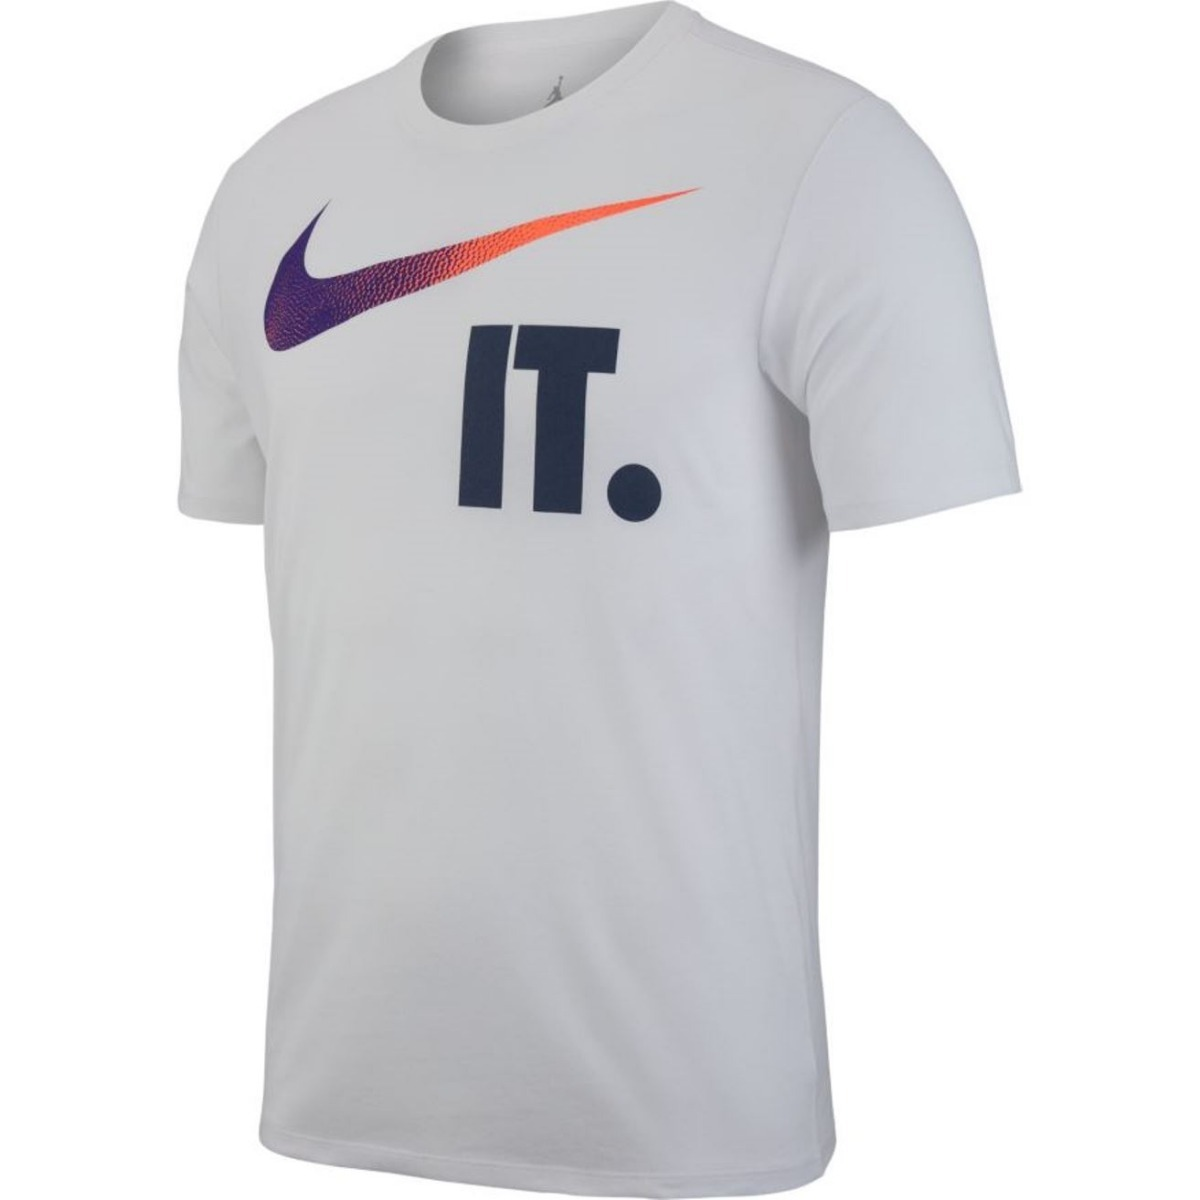 camiseta nike dry check it masculina - original. Carregando zoom. 090570fd7bff2